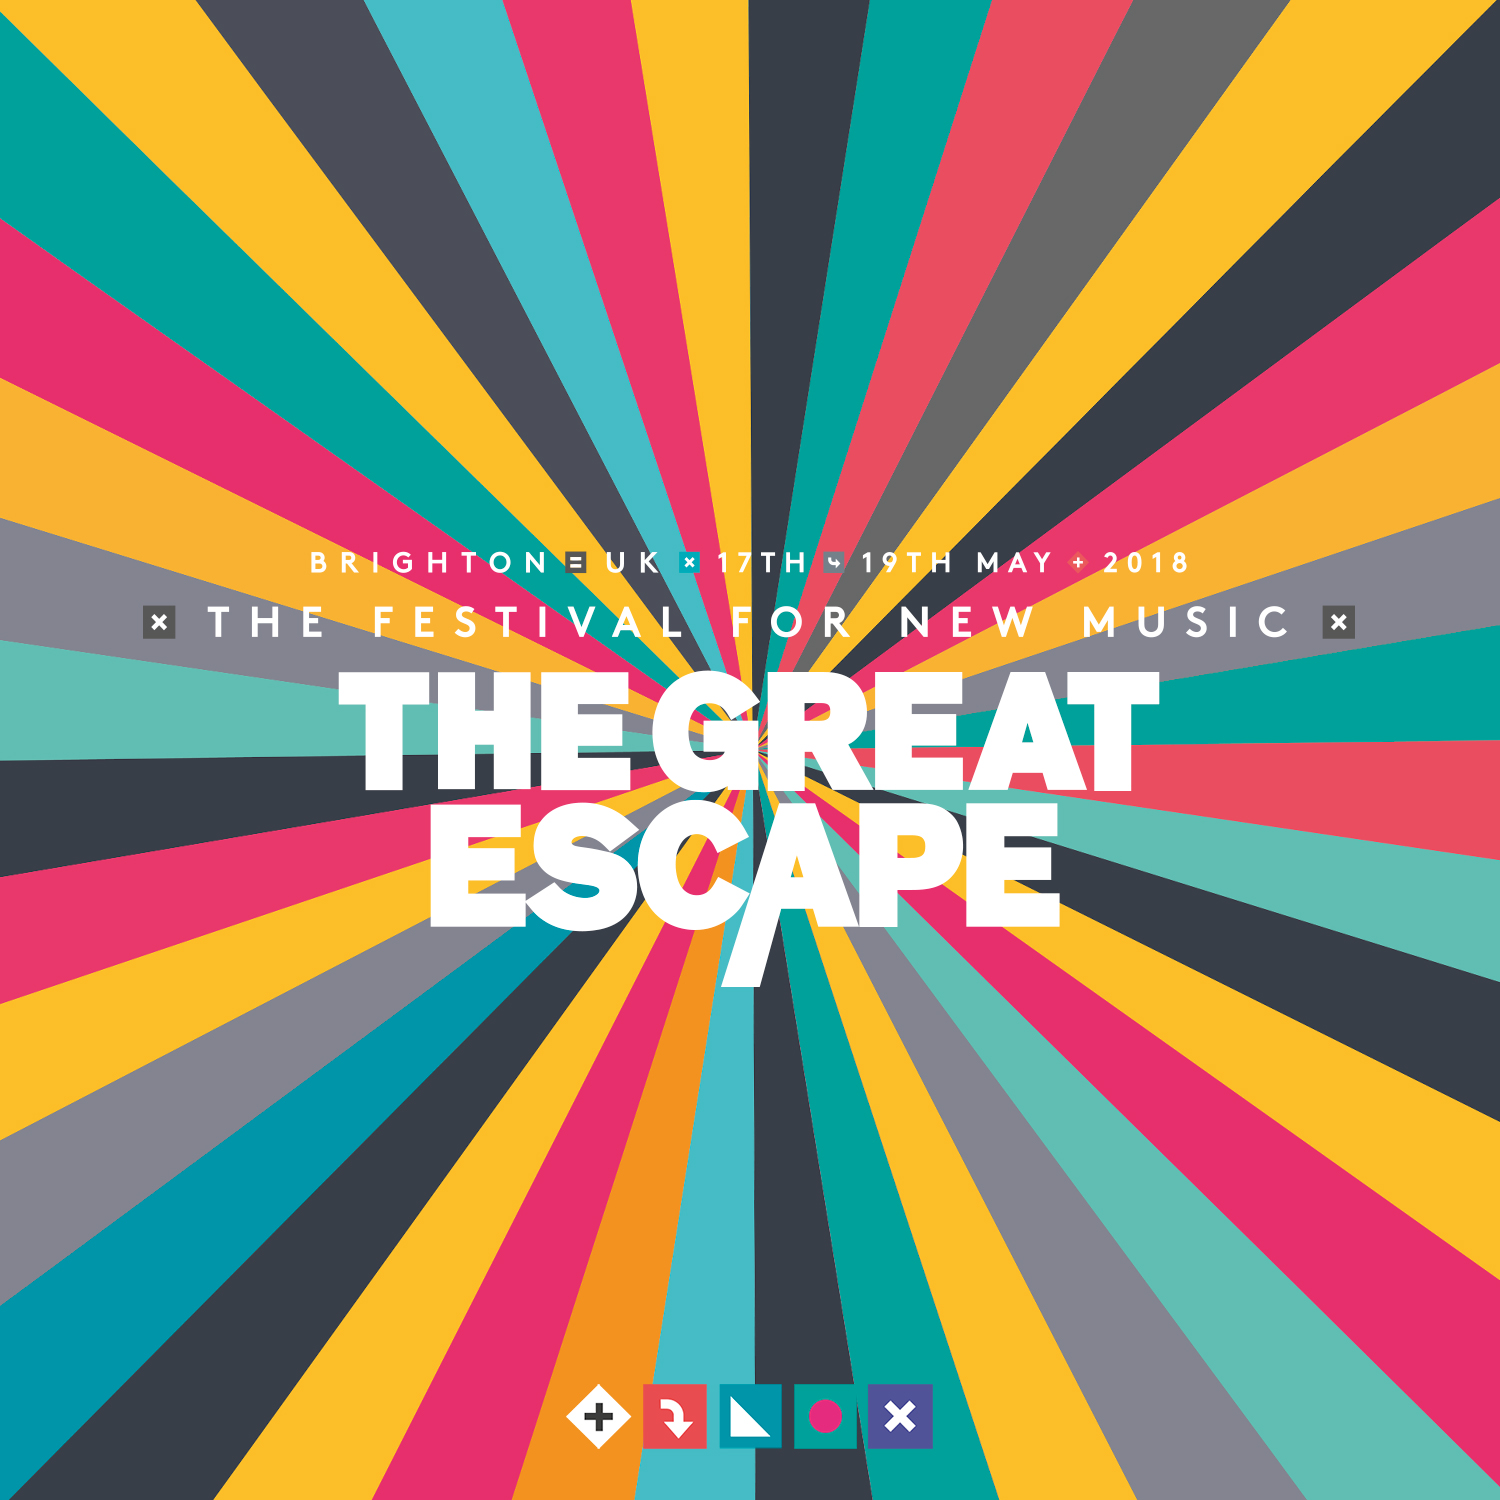 NEWS: IDLES, Snail Mail, Soccer Mommyand Insecure Men amongst additions for The Great Escape